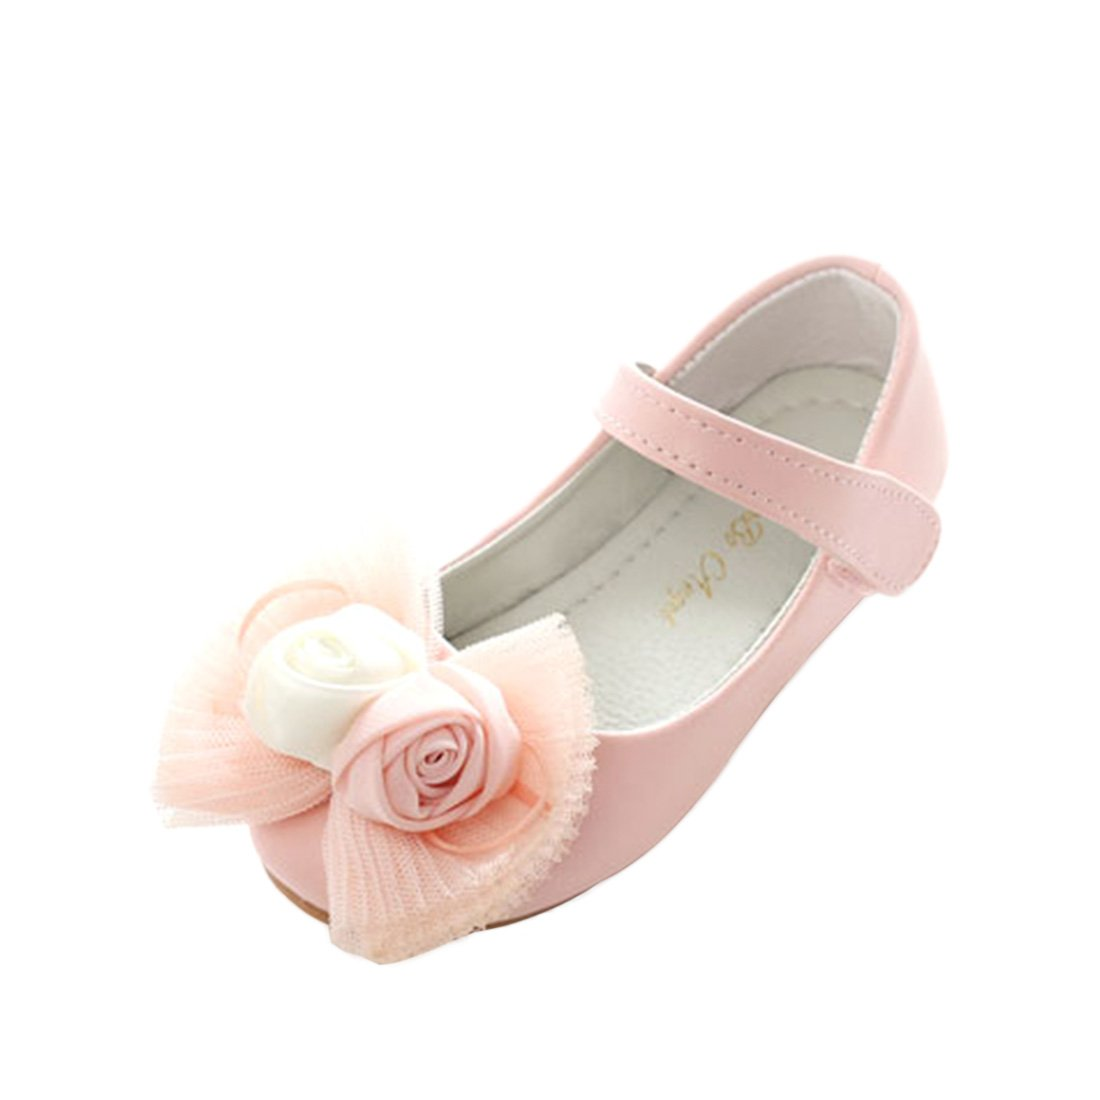 JTENGYAO Grils Mary Jane Dress Up Princess Shoes Wedding Flat Summer Sandals Shoes by JTENGYAO